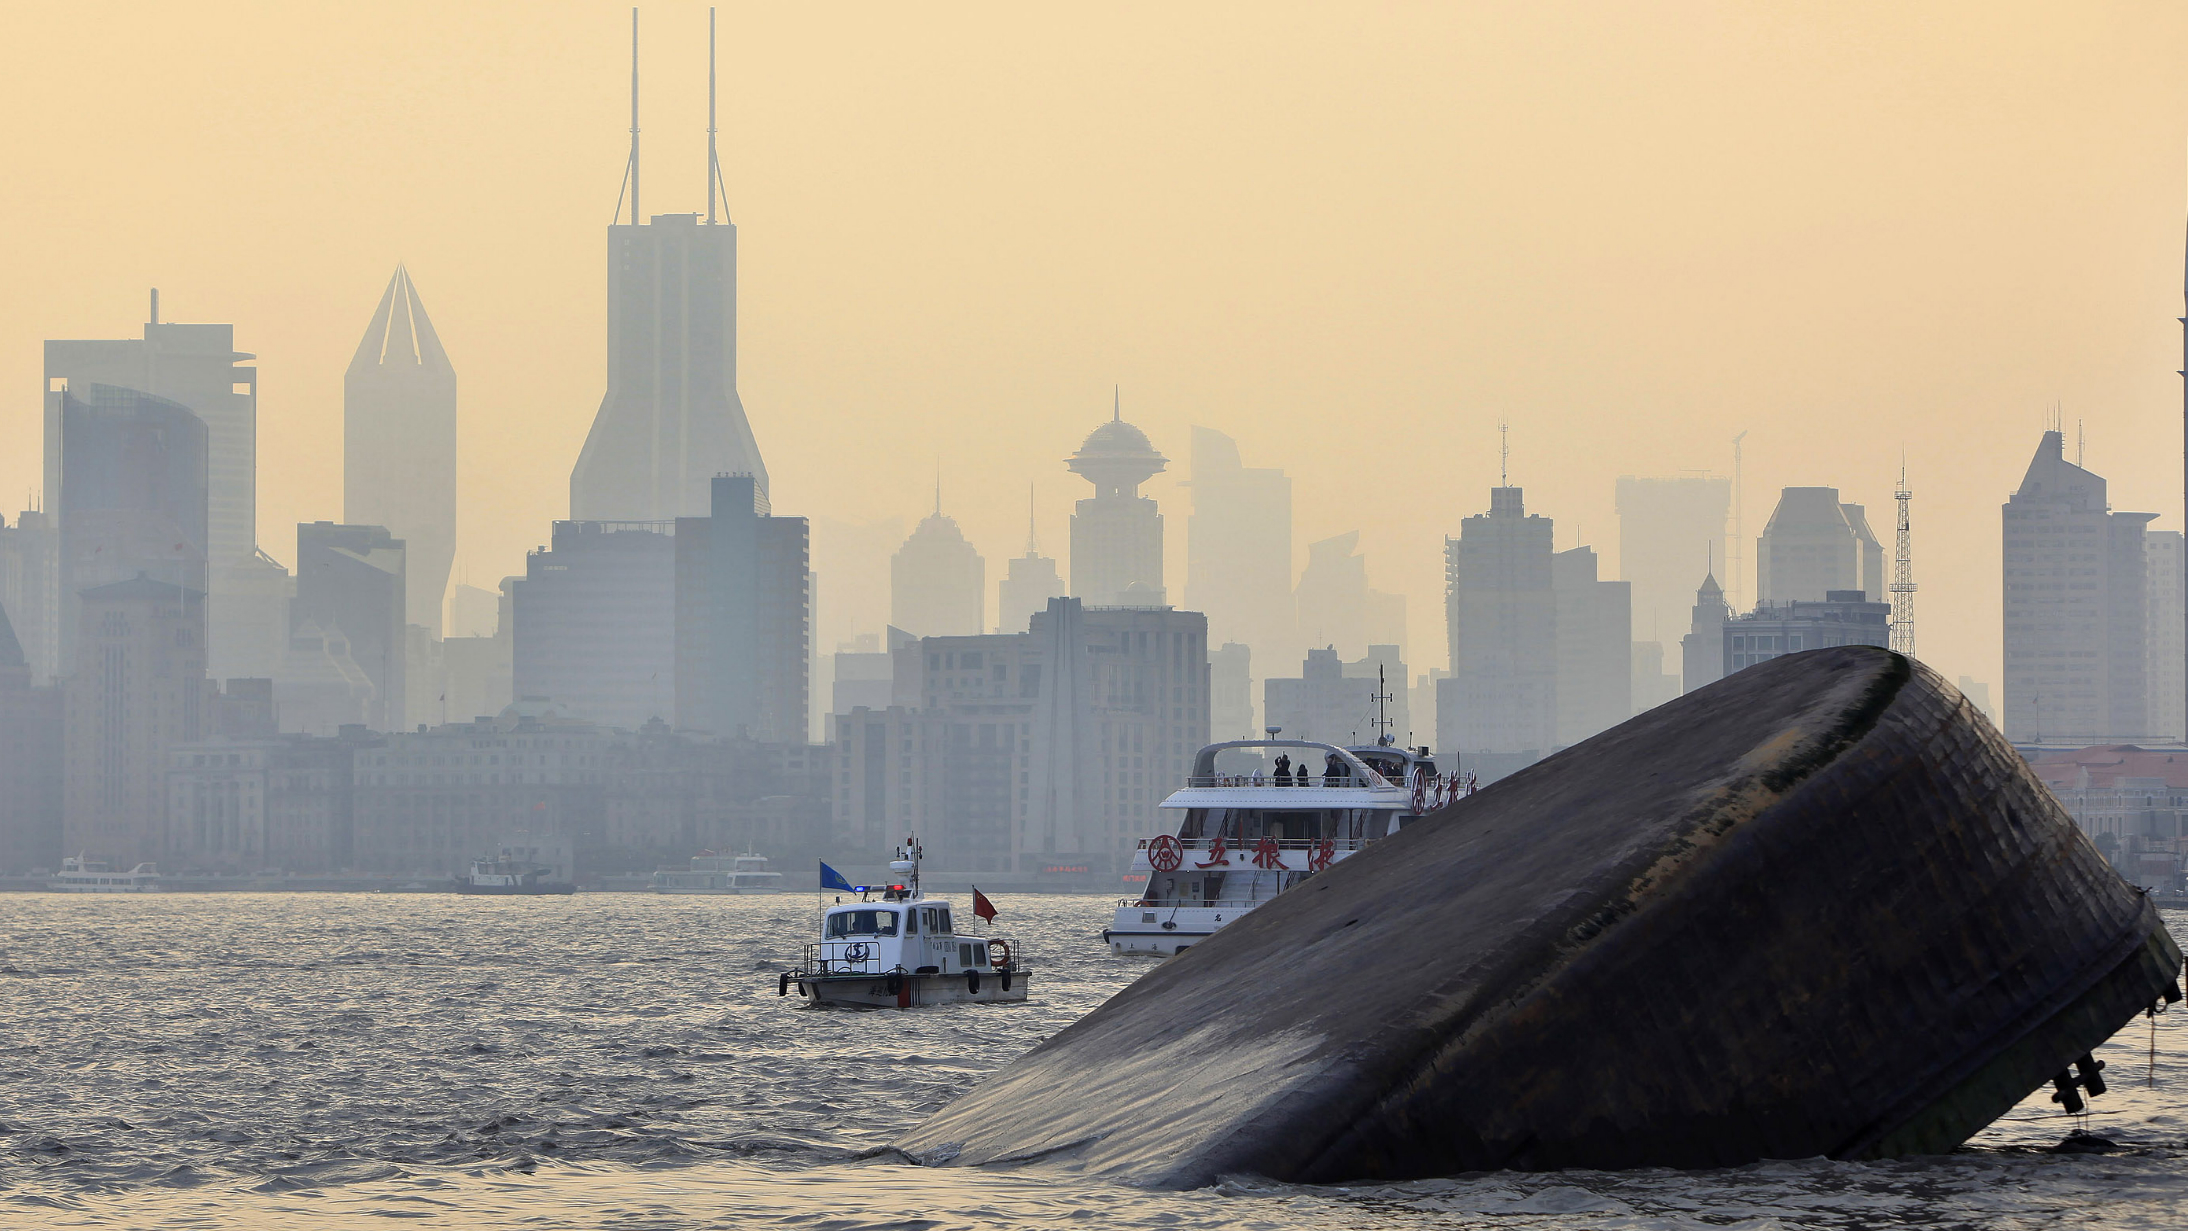 A view shows a cargo ship after it collided with a boat on Huangpu River in Shanghai February 1, 2010. Three sailors were rescued from the accident, while further investigation is underway, according to local media. REUTERS/Aly Song